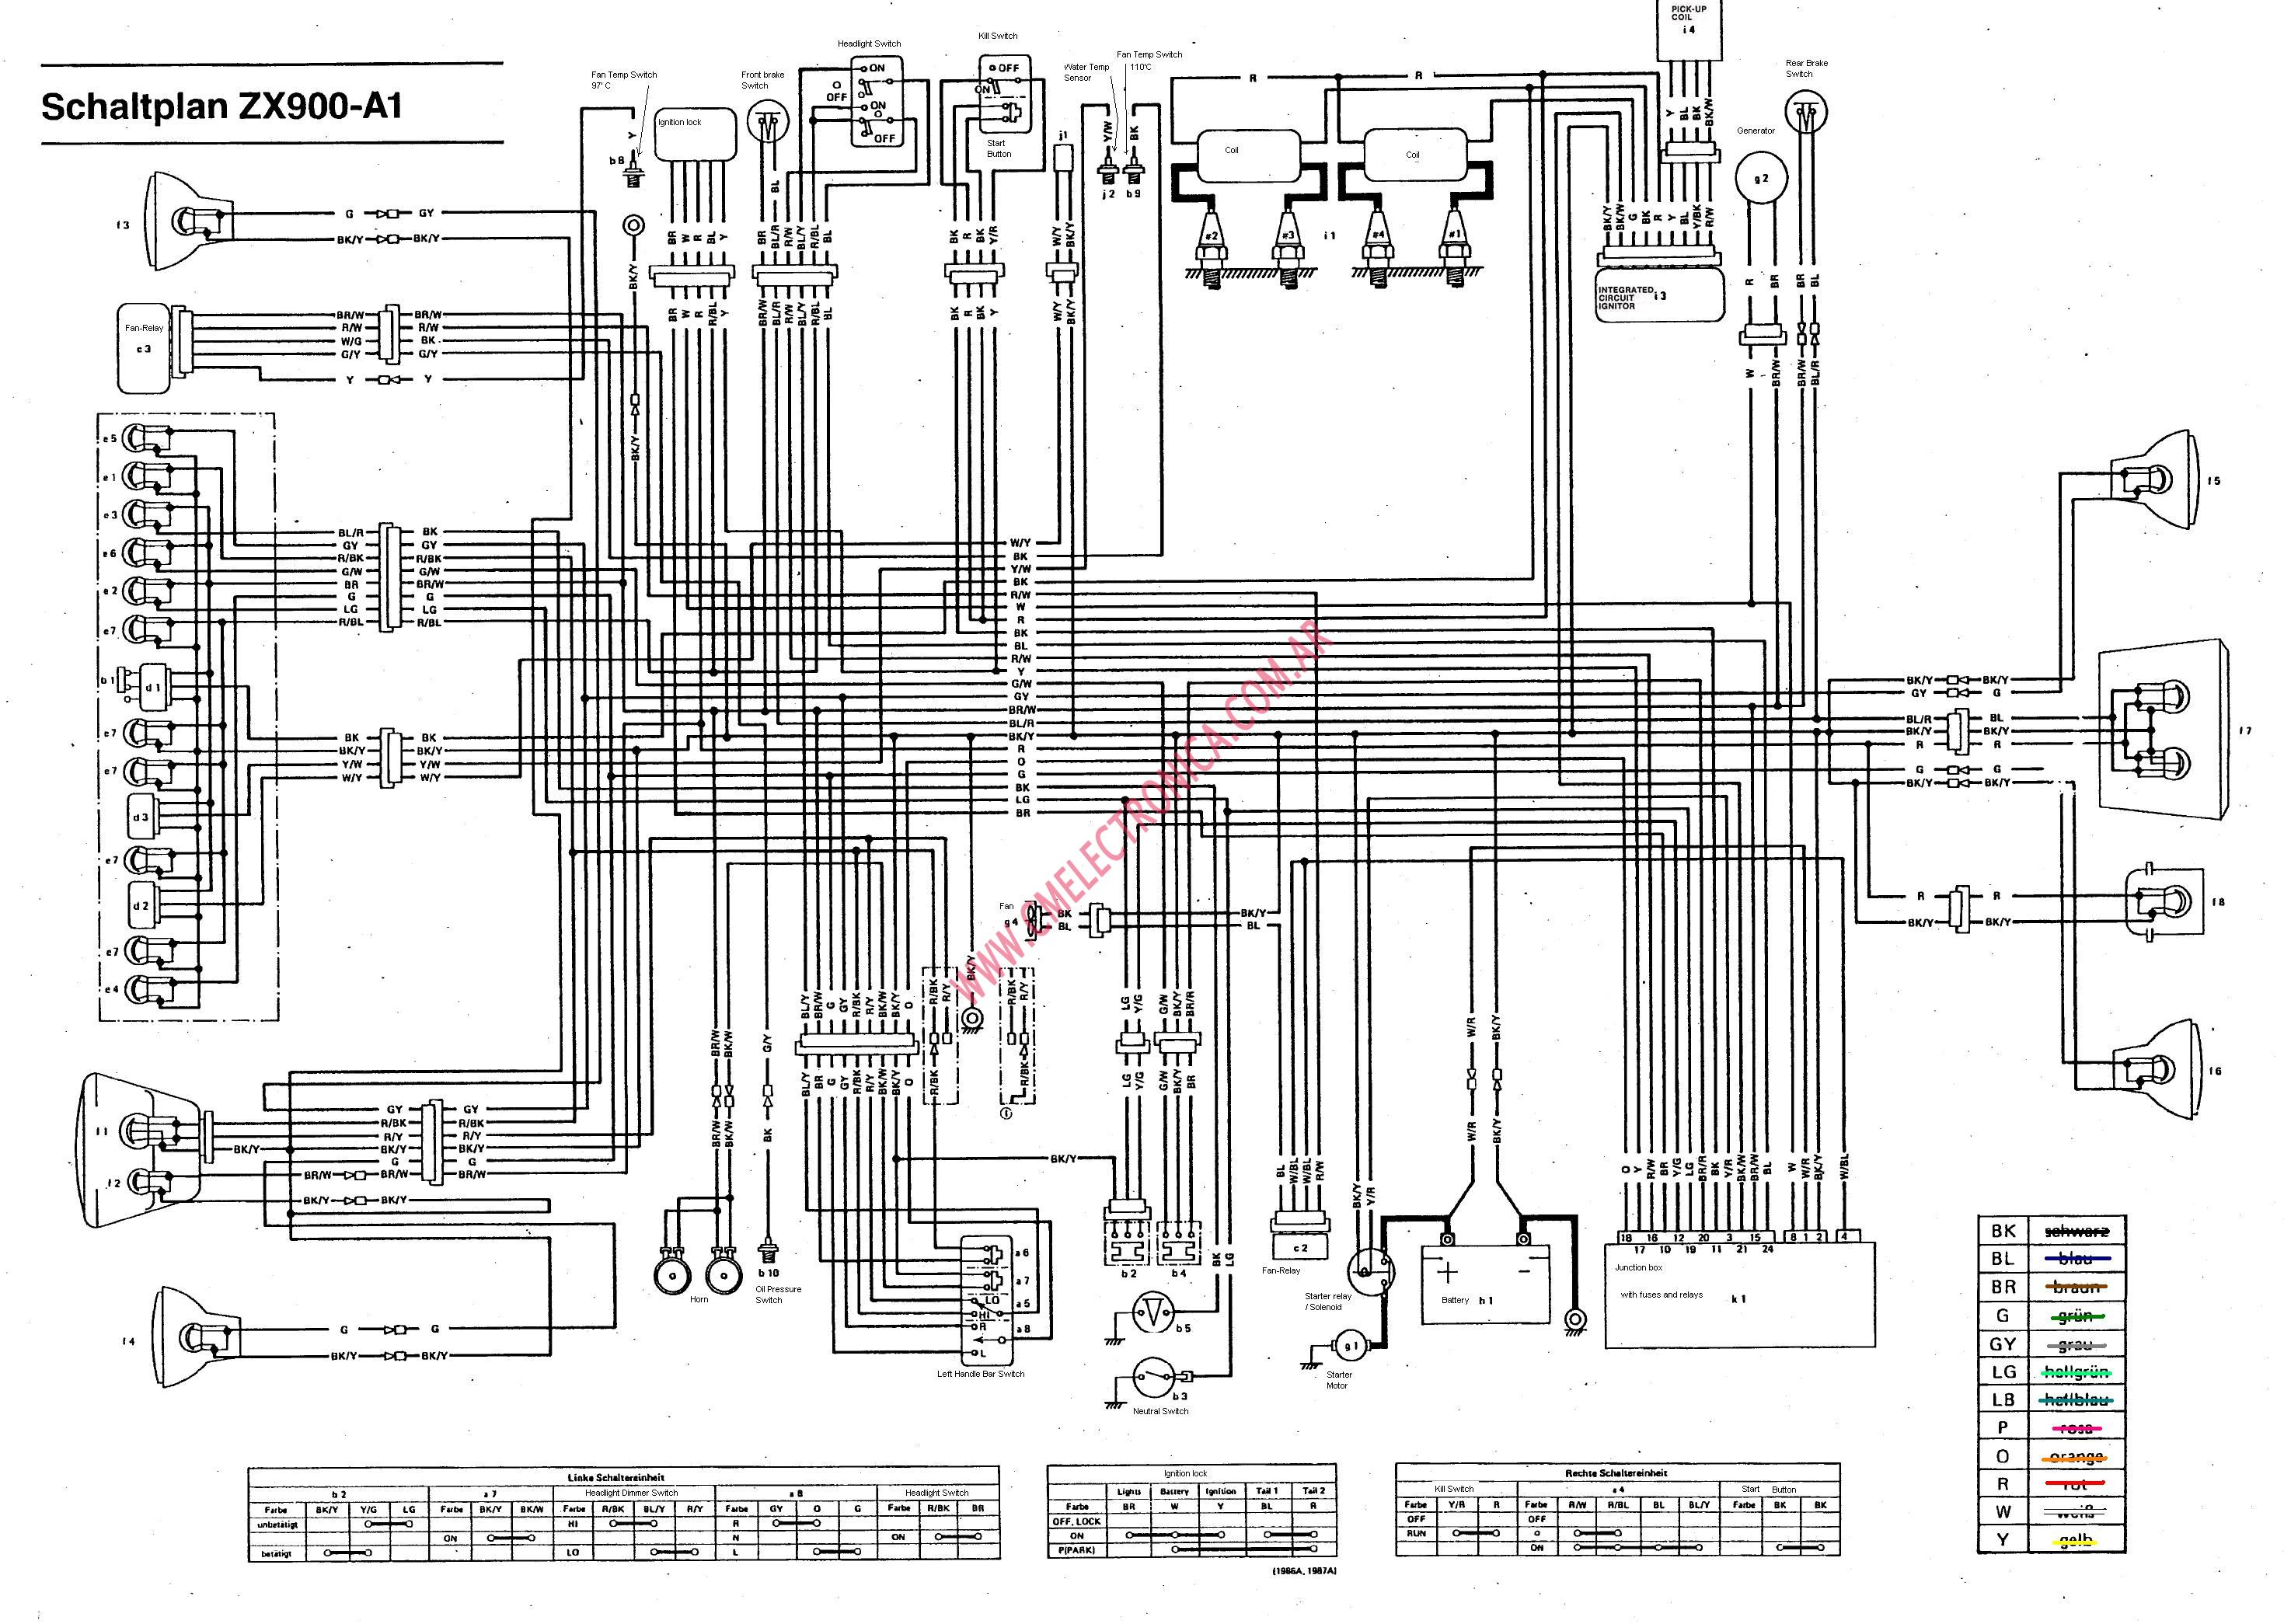 Showthread additionally 80 Kz750 Wiring Diagram together with 1982 Kawasaki Kz550 Wiring Diagram together with T12497621 Need wire schematics 1979 kawasaki kz together with Kawasaki Kz440 Parts Diagram. on 1982 kawasaki kz750 wiring diagram